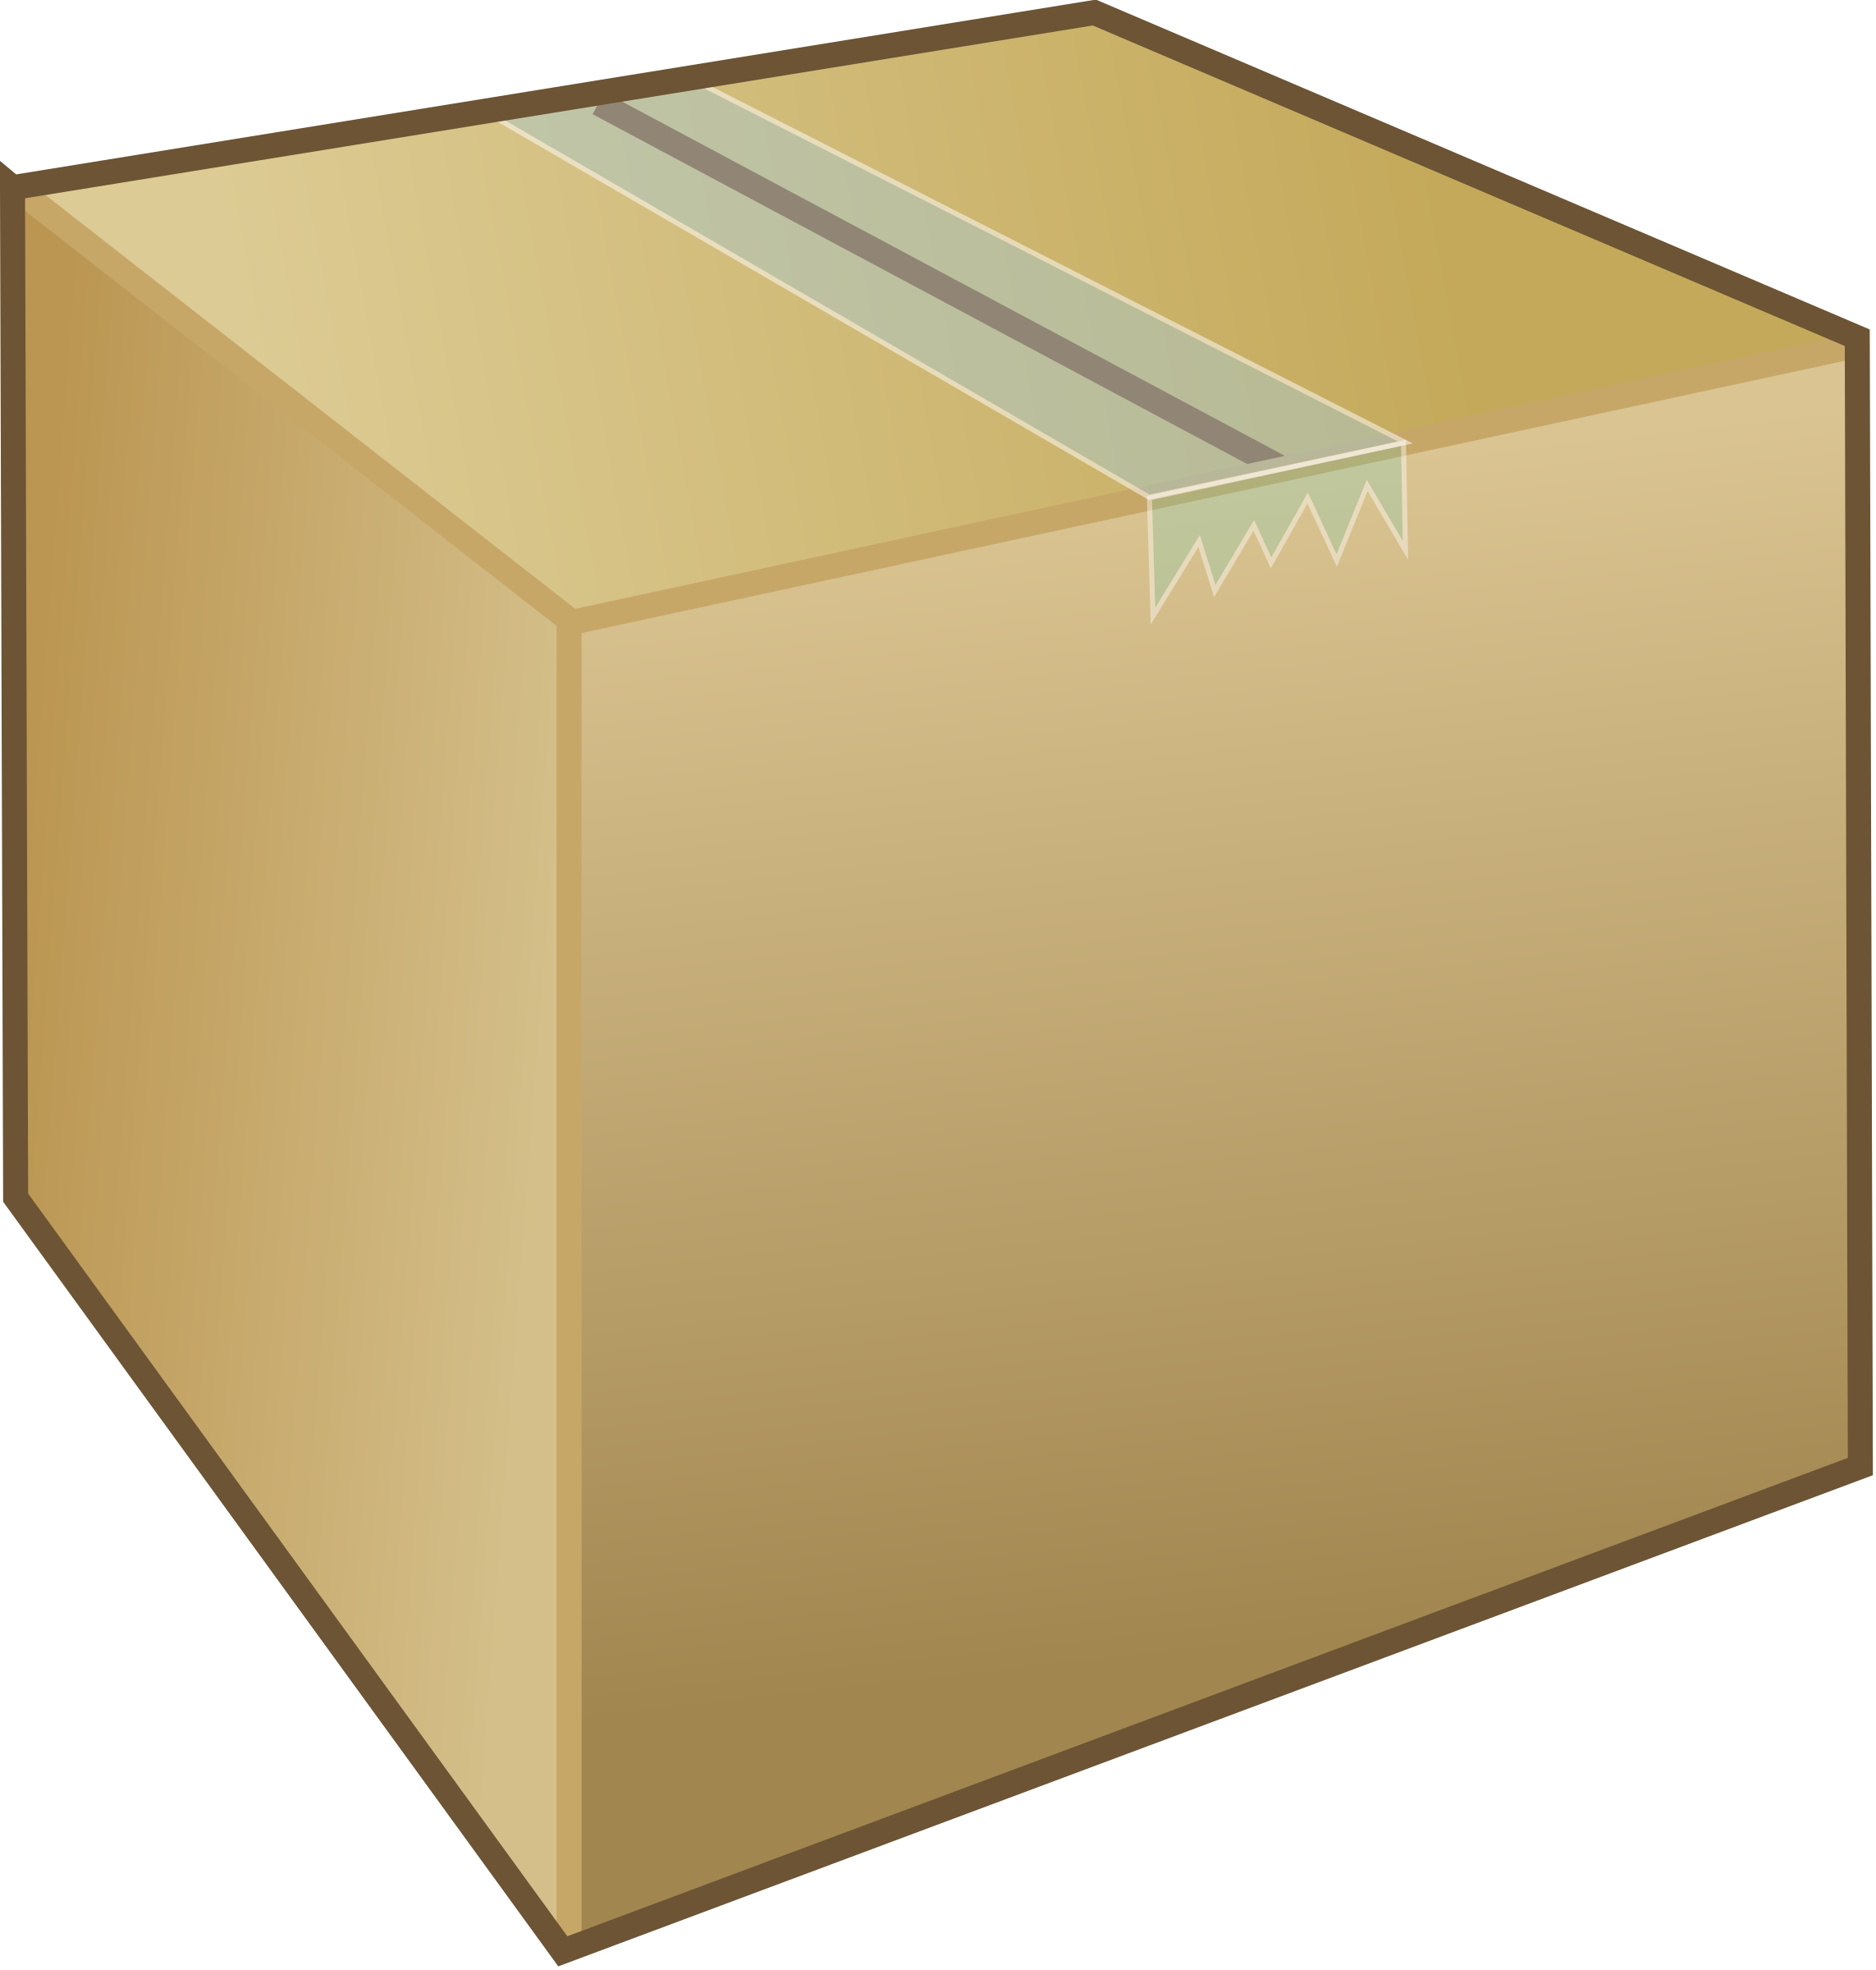 Cardboard box / package by Kliponius